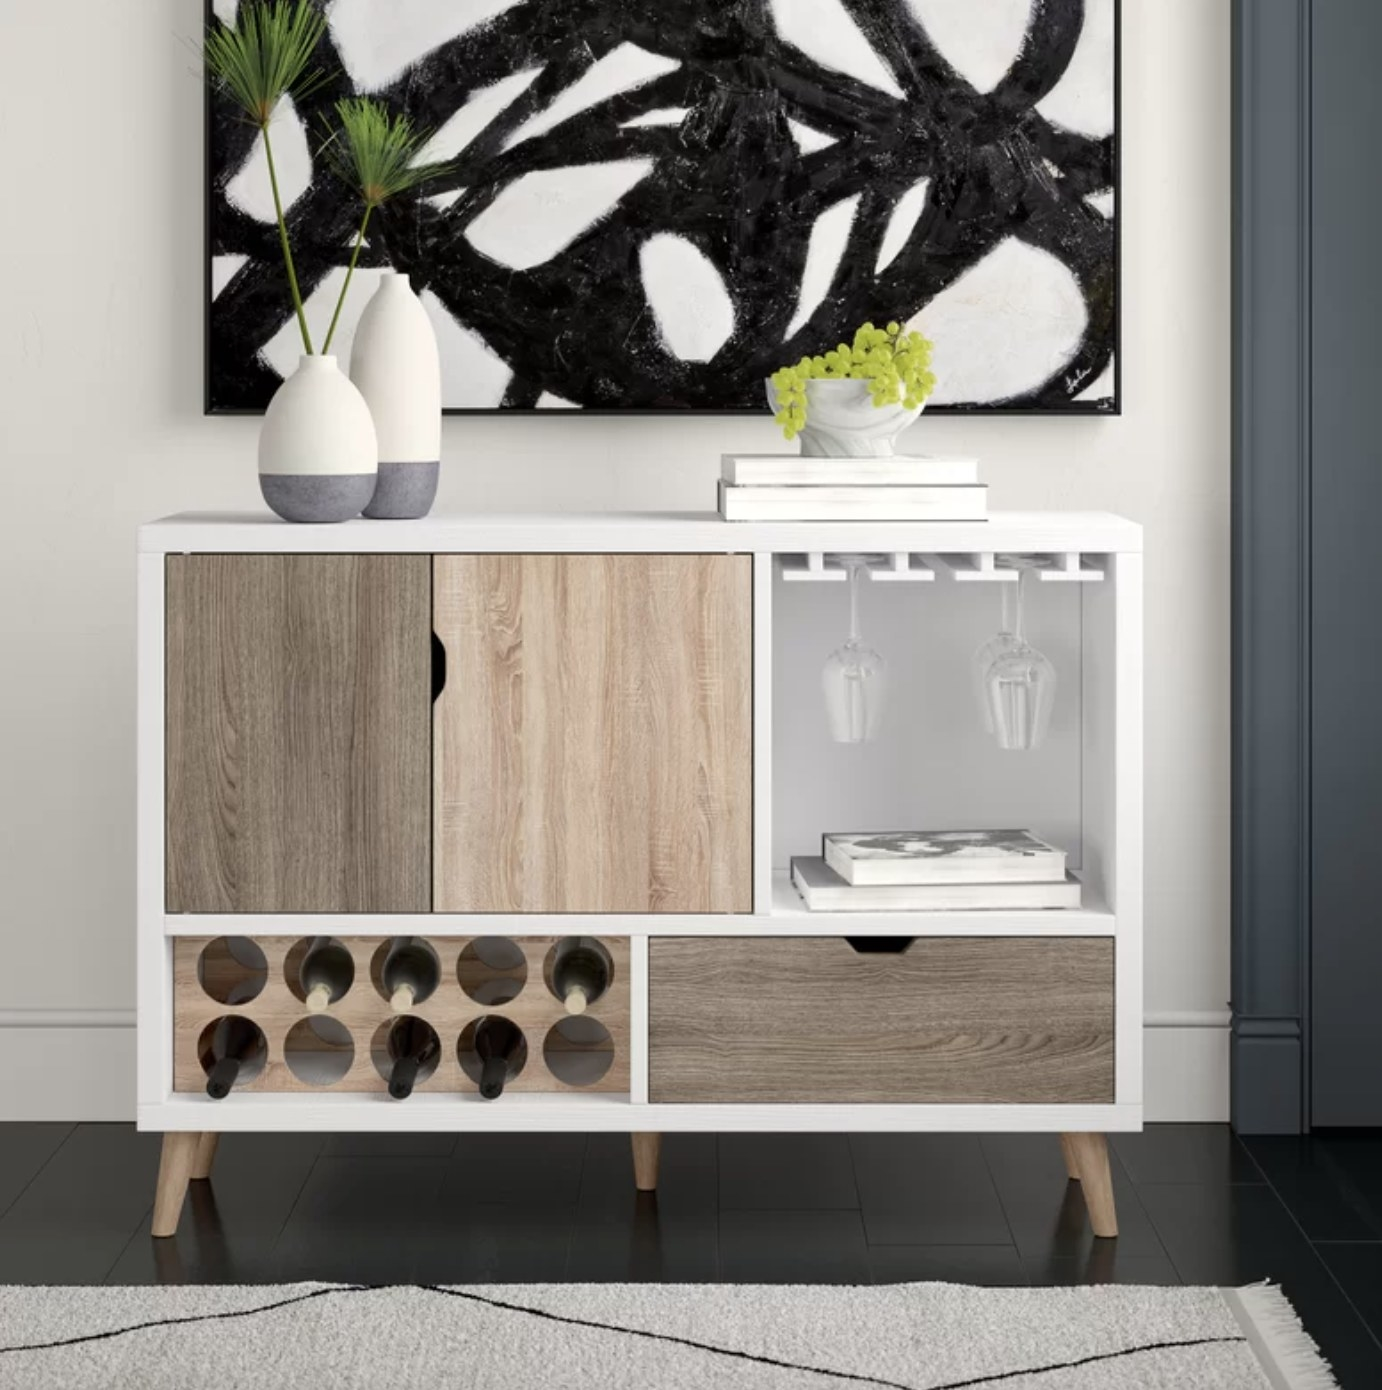 the shelving unit with wine bottle and glass storage